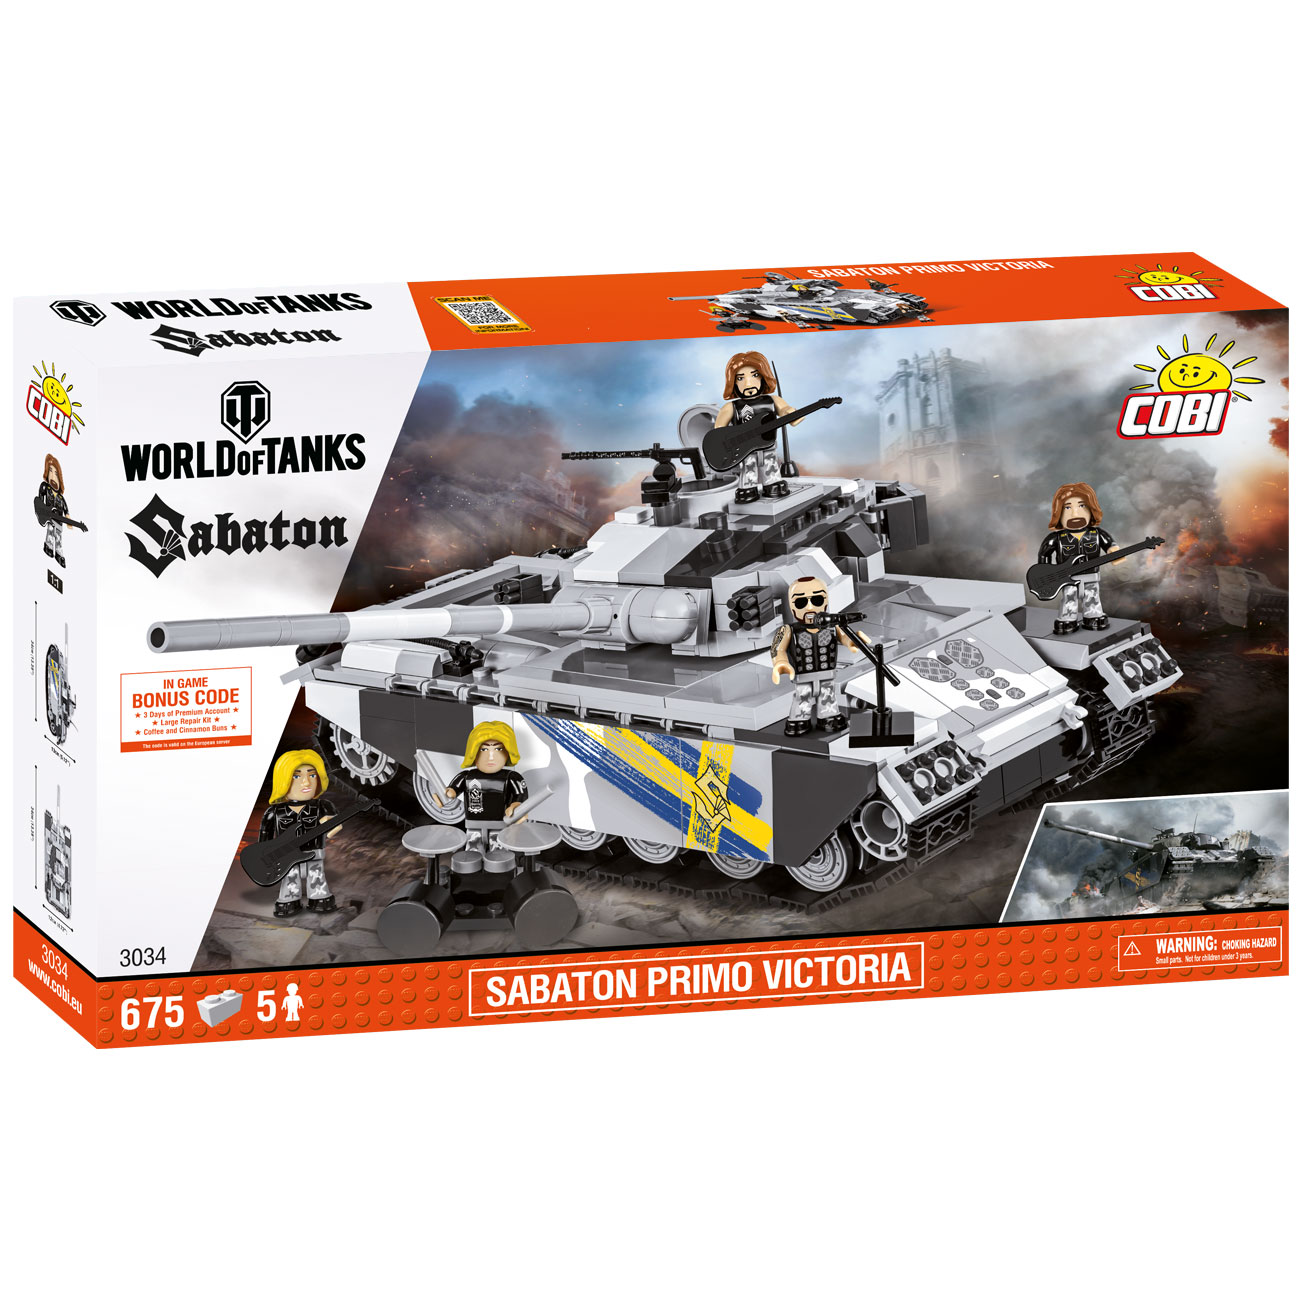 Cobi World Of Tanks Bau Panzer Sabaton Primo Victoria 675 Teile 3034 1